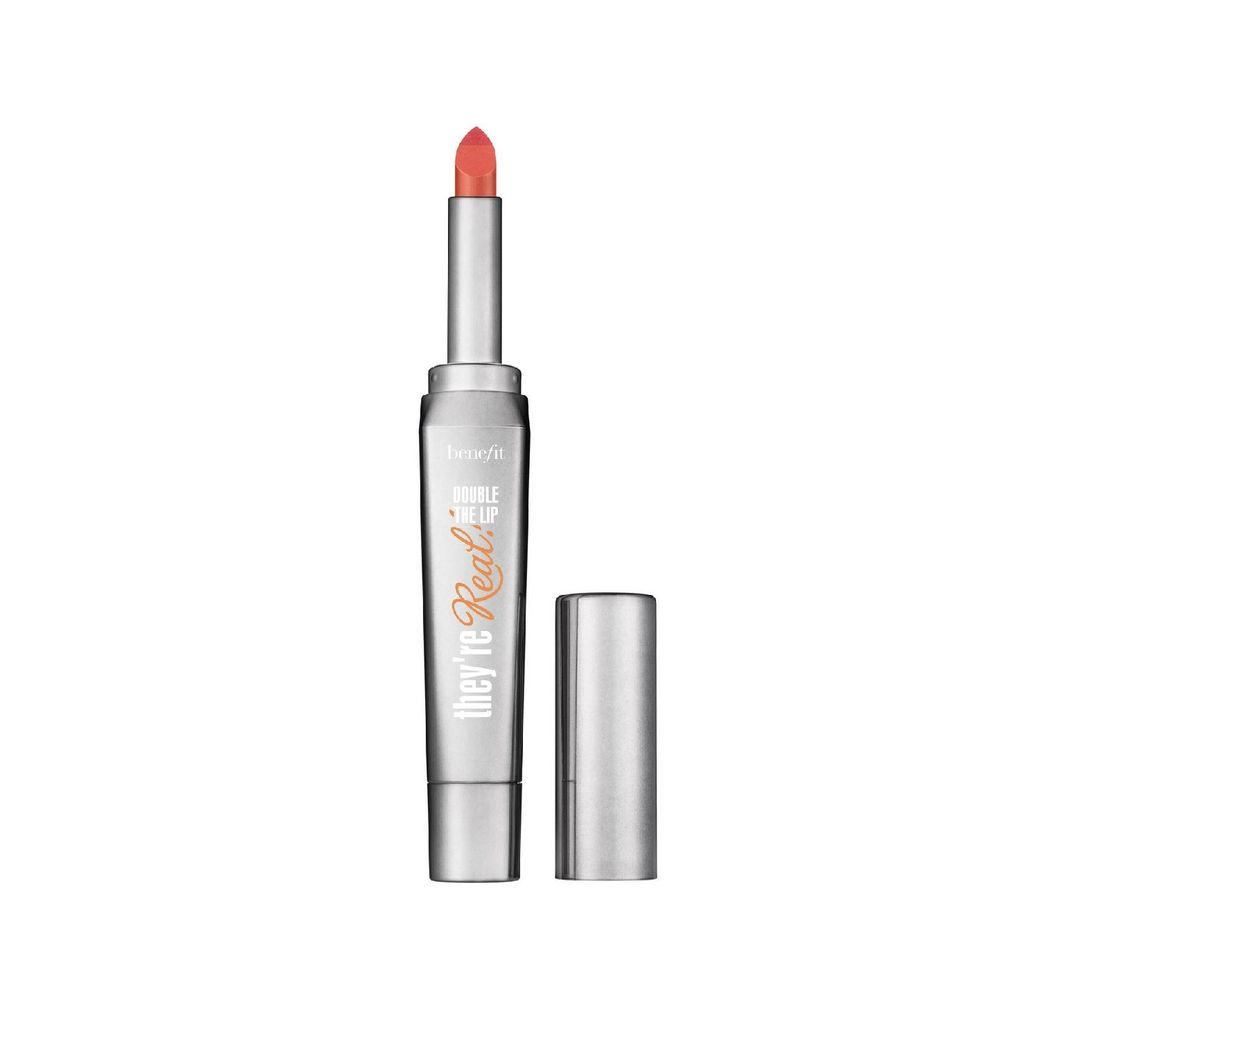 Batom They're Real! Coral Confessions, Benefit, €22,55